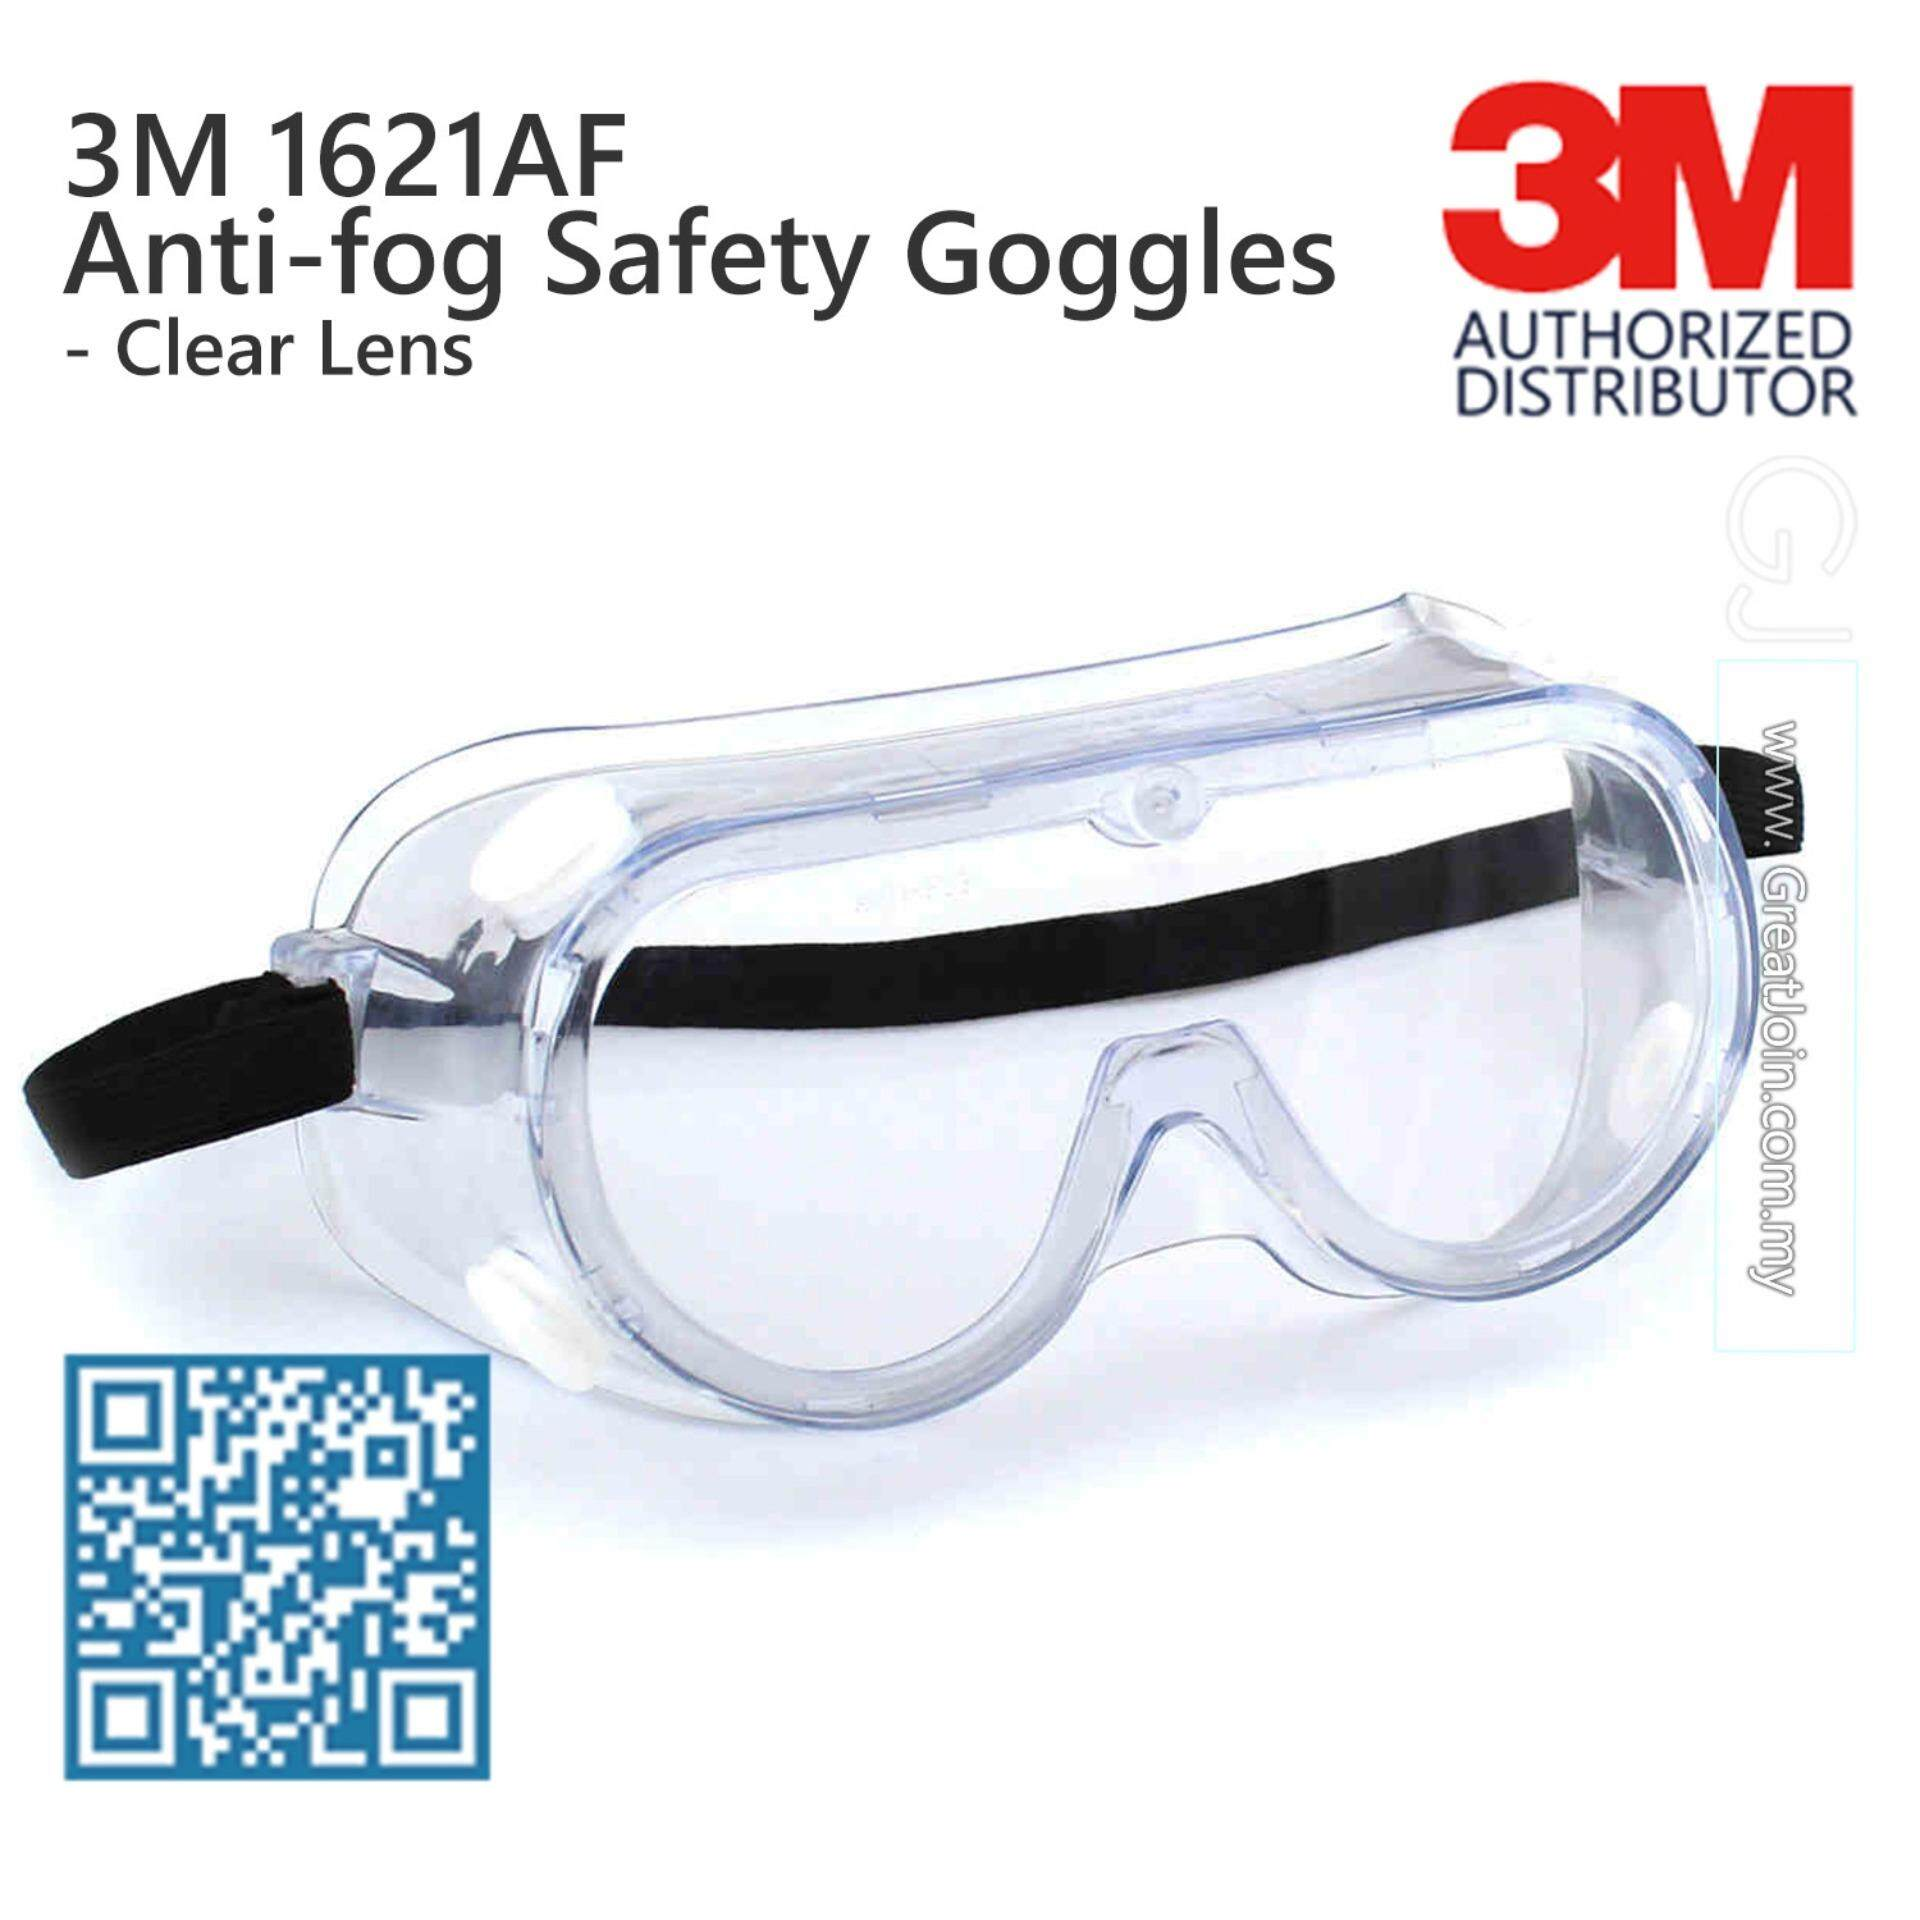 dcce4e98031 3M Home Eye Protection price in Malaysia - Best 3M Home Eye ...